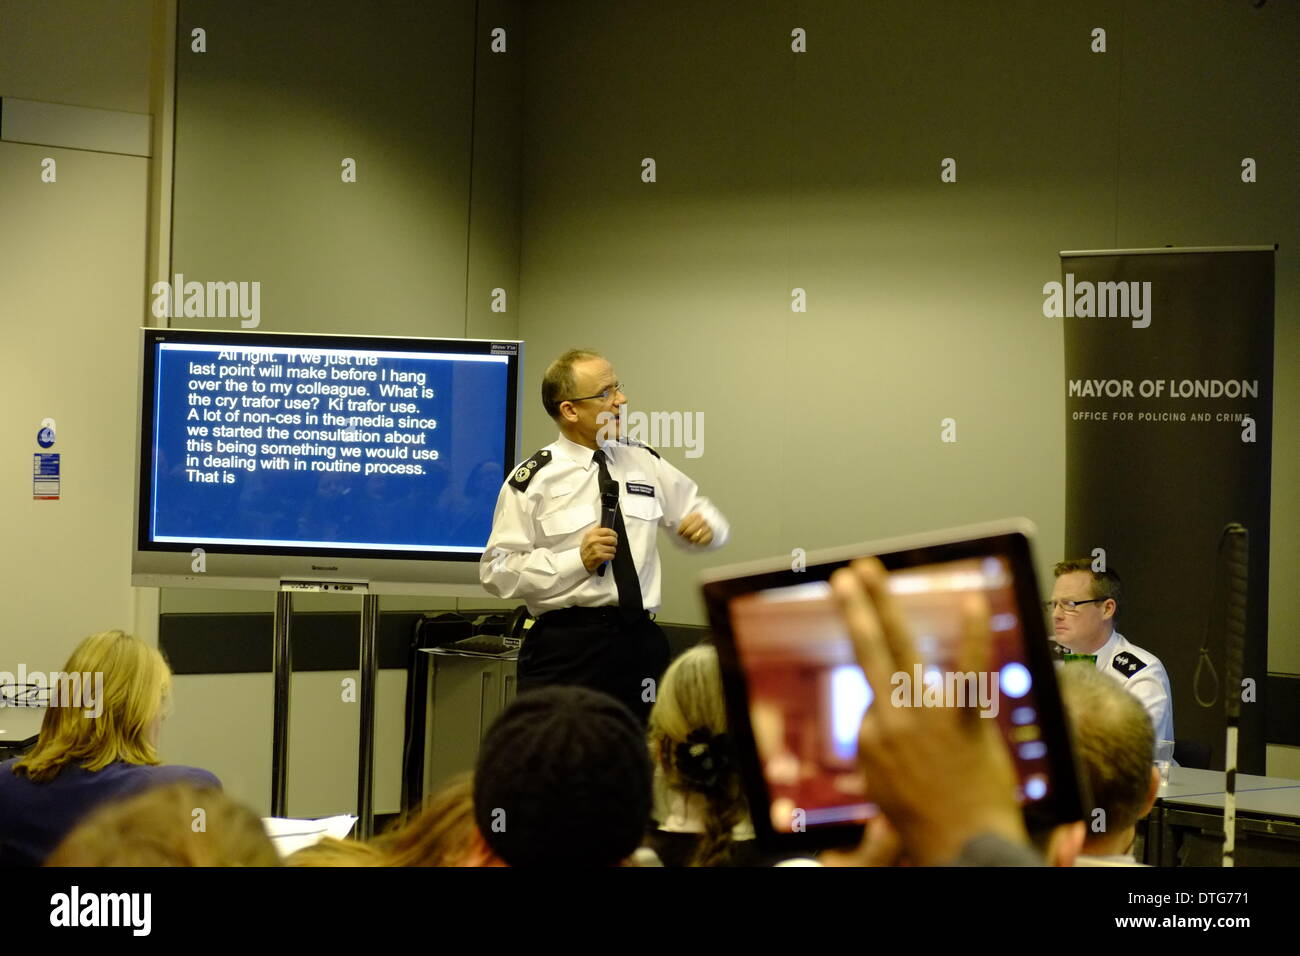 A consultation meeting  MOPAC Water Cannon Engagement .Unfortunate typing refers to 'a lot of non ces in the media' - Stock Image